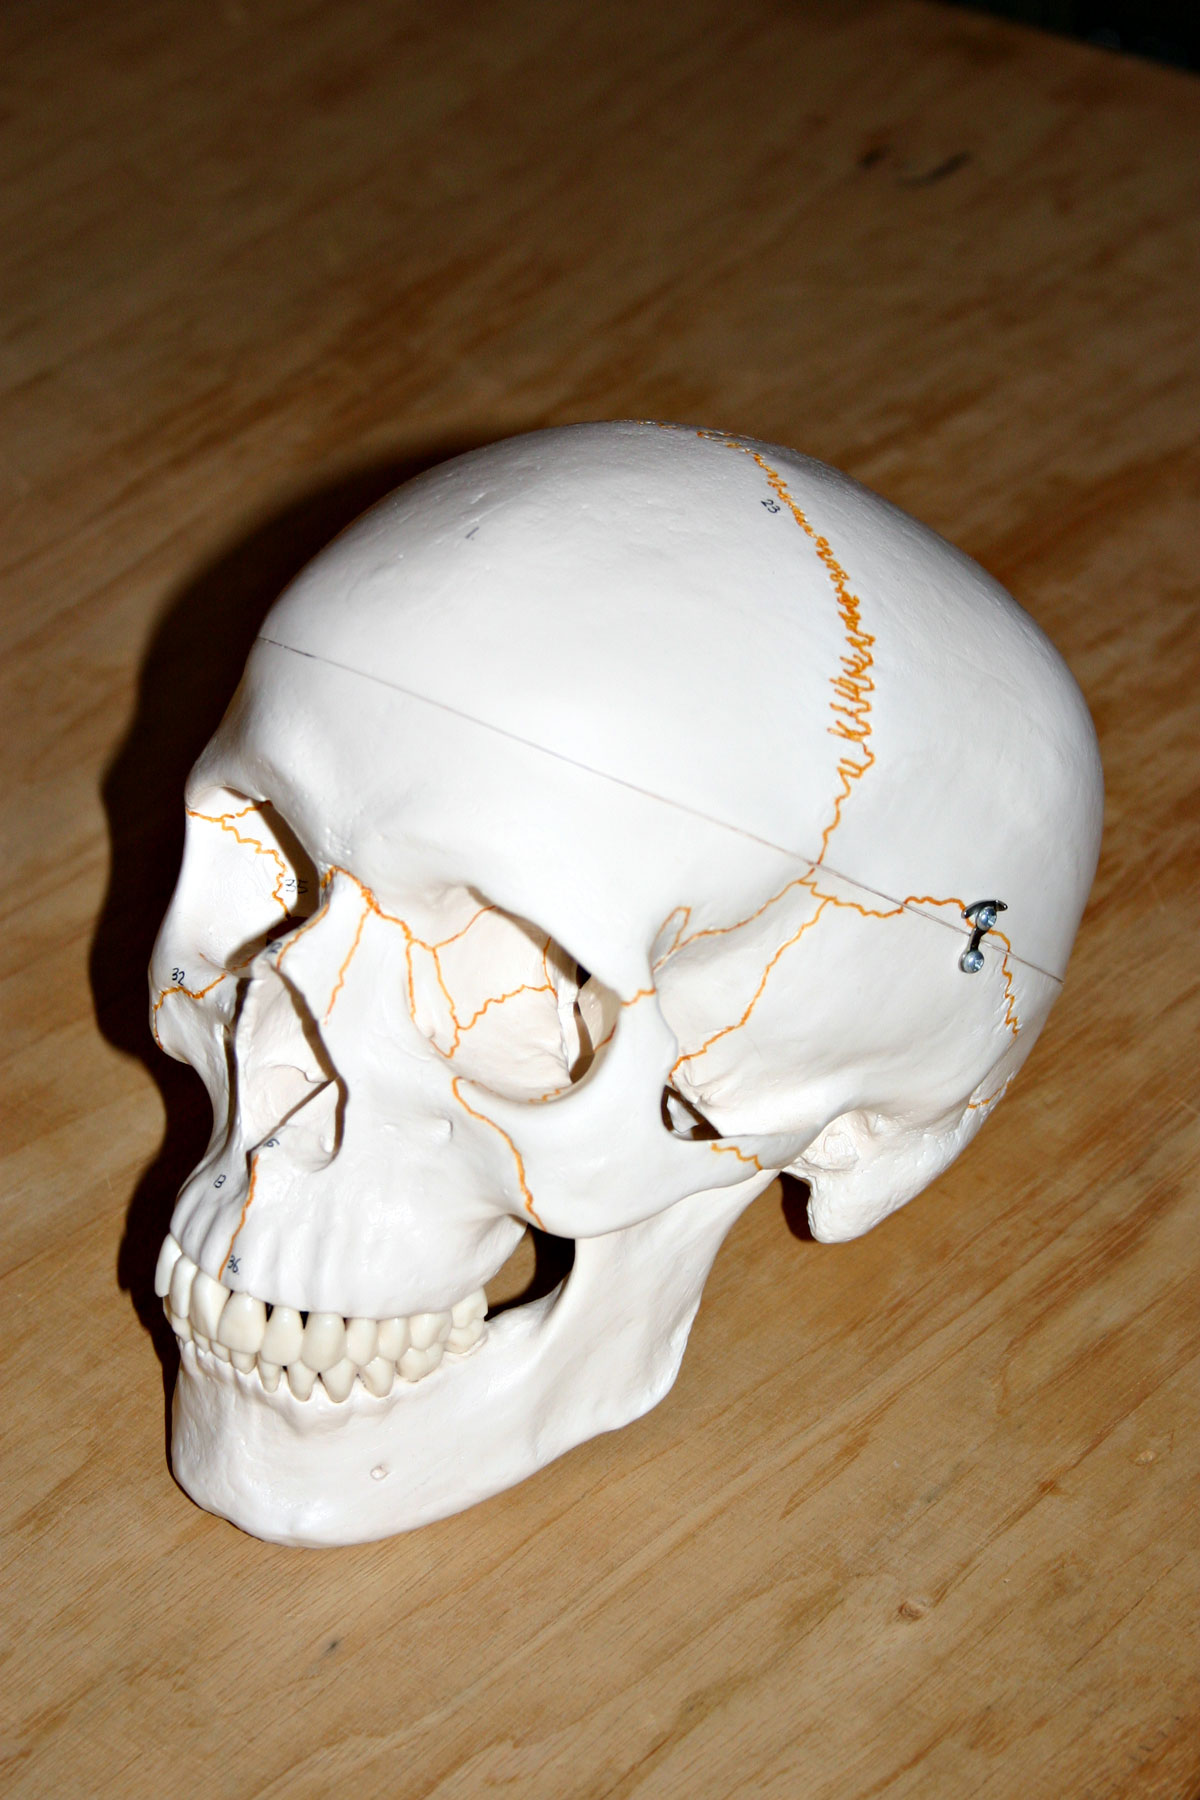 Plastic skull, Plastic, Skull, Head, Cranium, HQ Photo